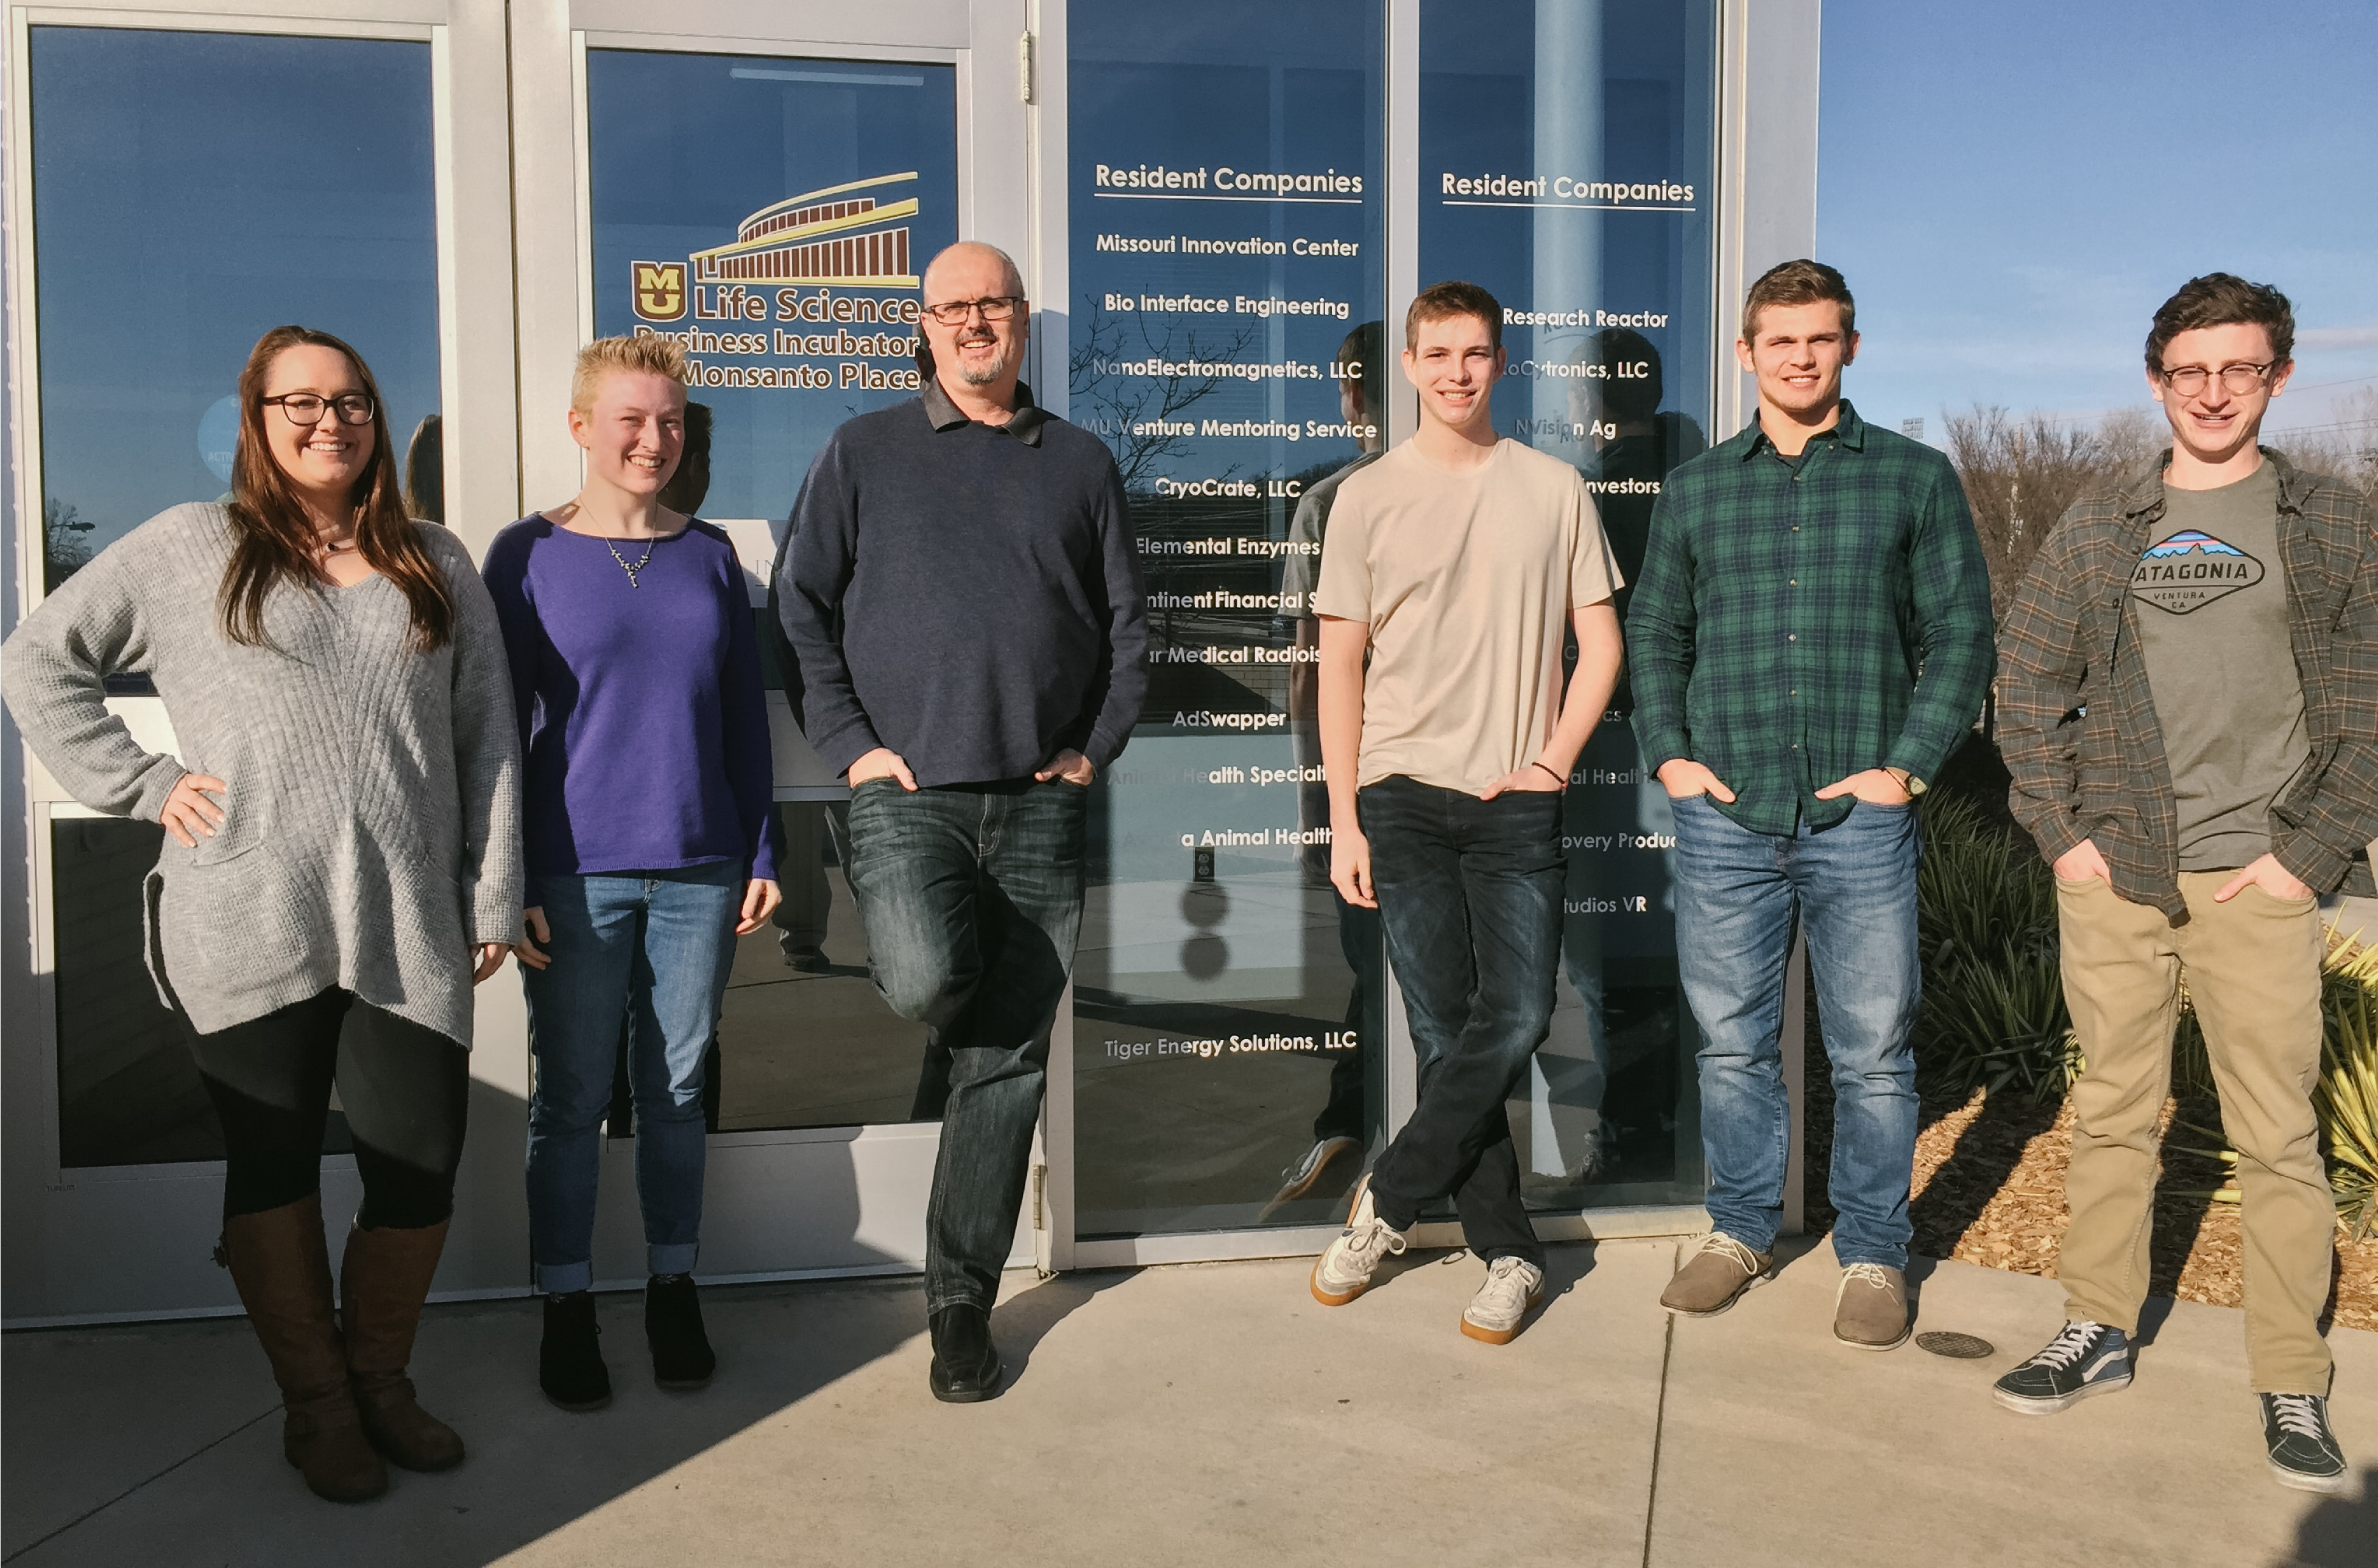 The AdSwapper team outside the Life Science Business Incubator in Columbia, Missouri.